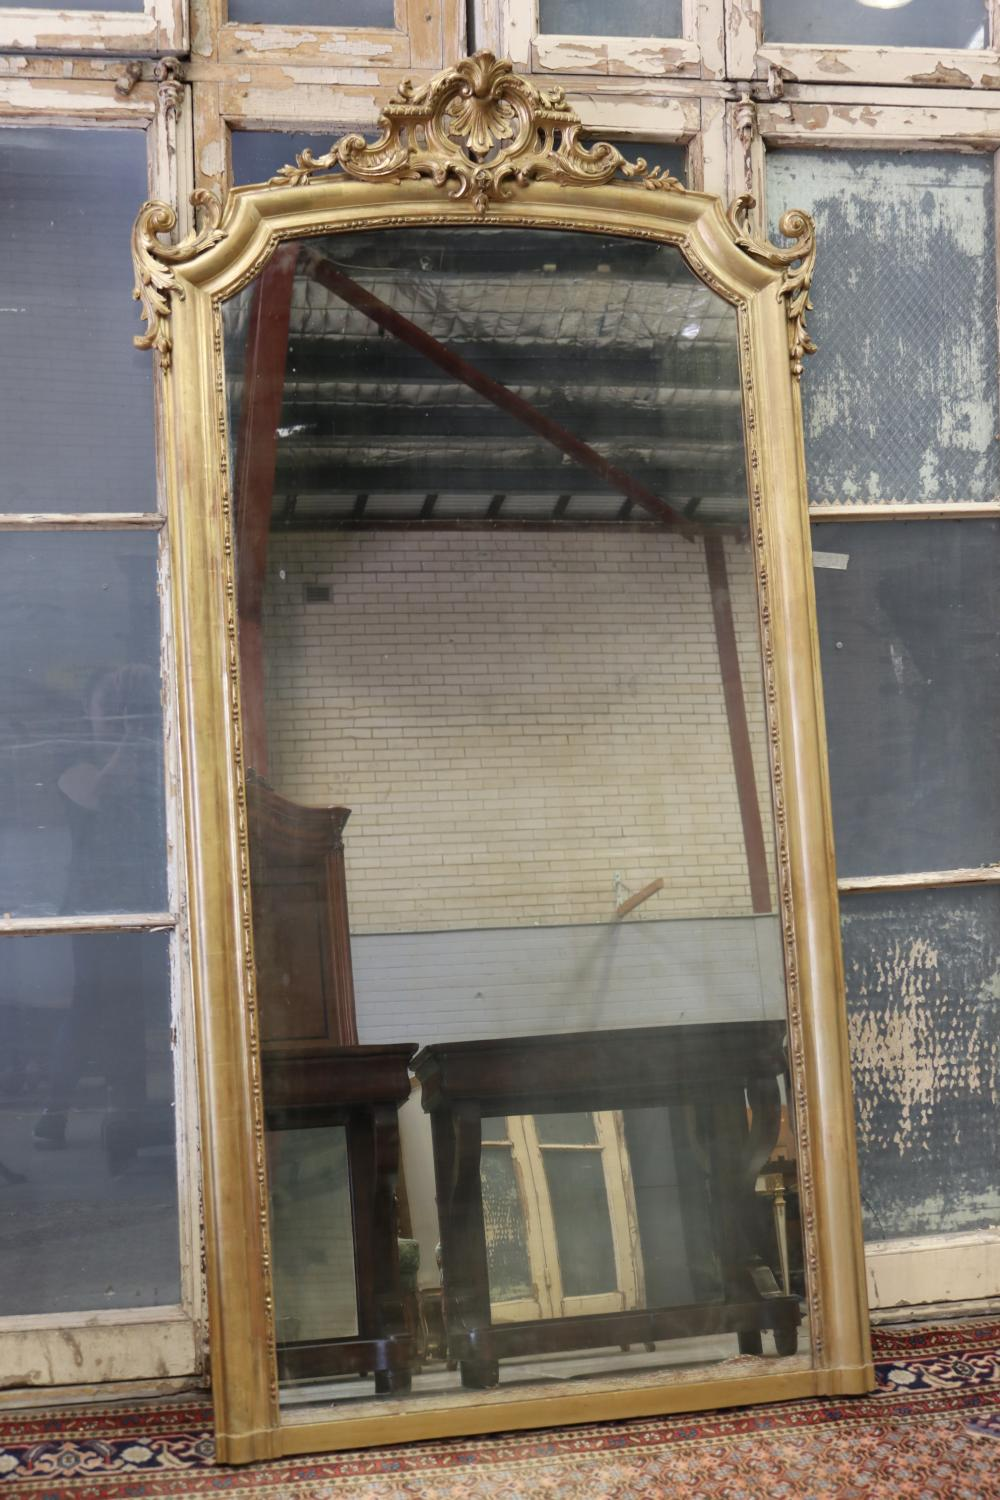 Antique French Louis XV style gilt frame mantle mirror, moulded crest decoration to top, approx 212cm H x 108cm W